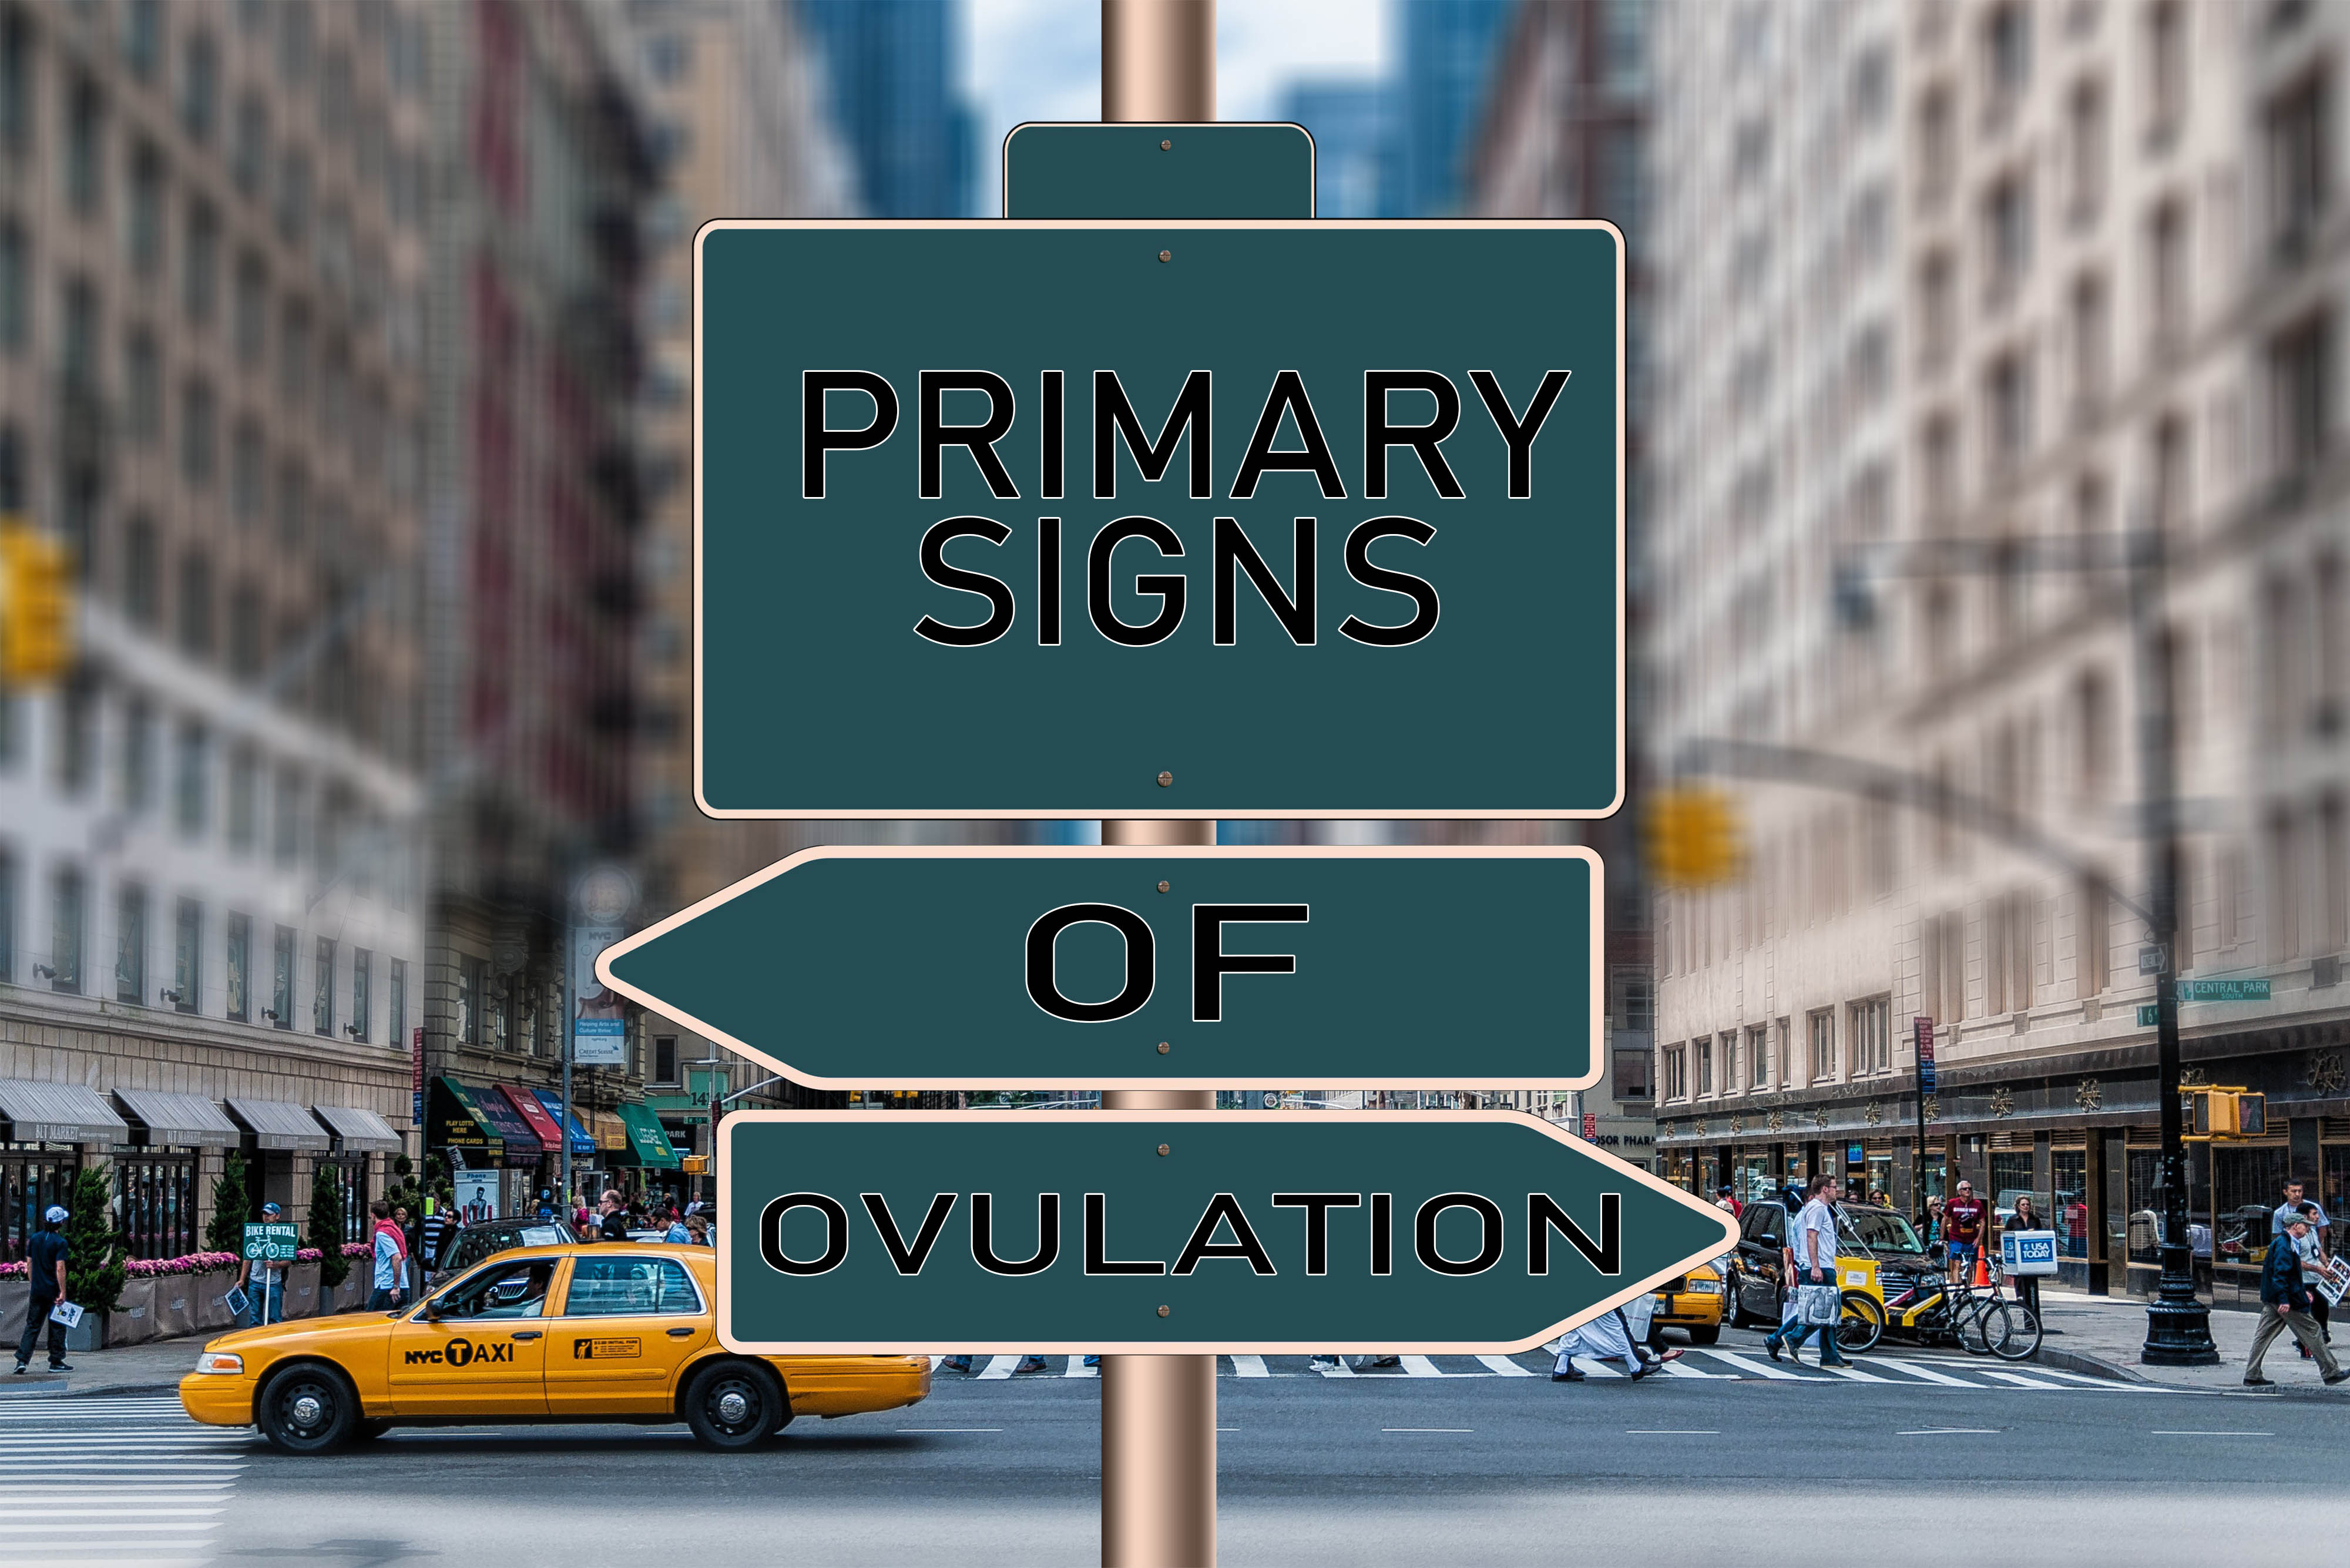 PRIMARY SIGNS OF OVULATION